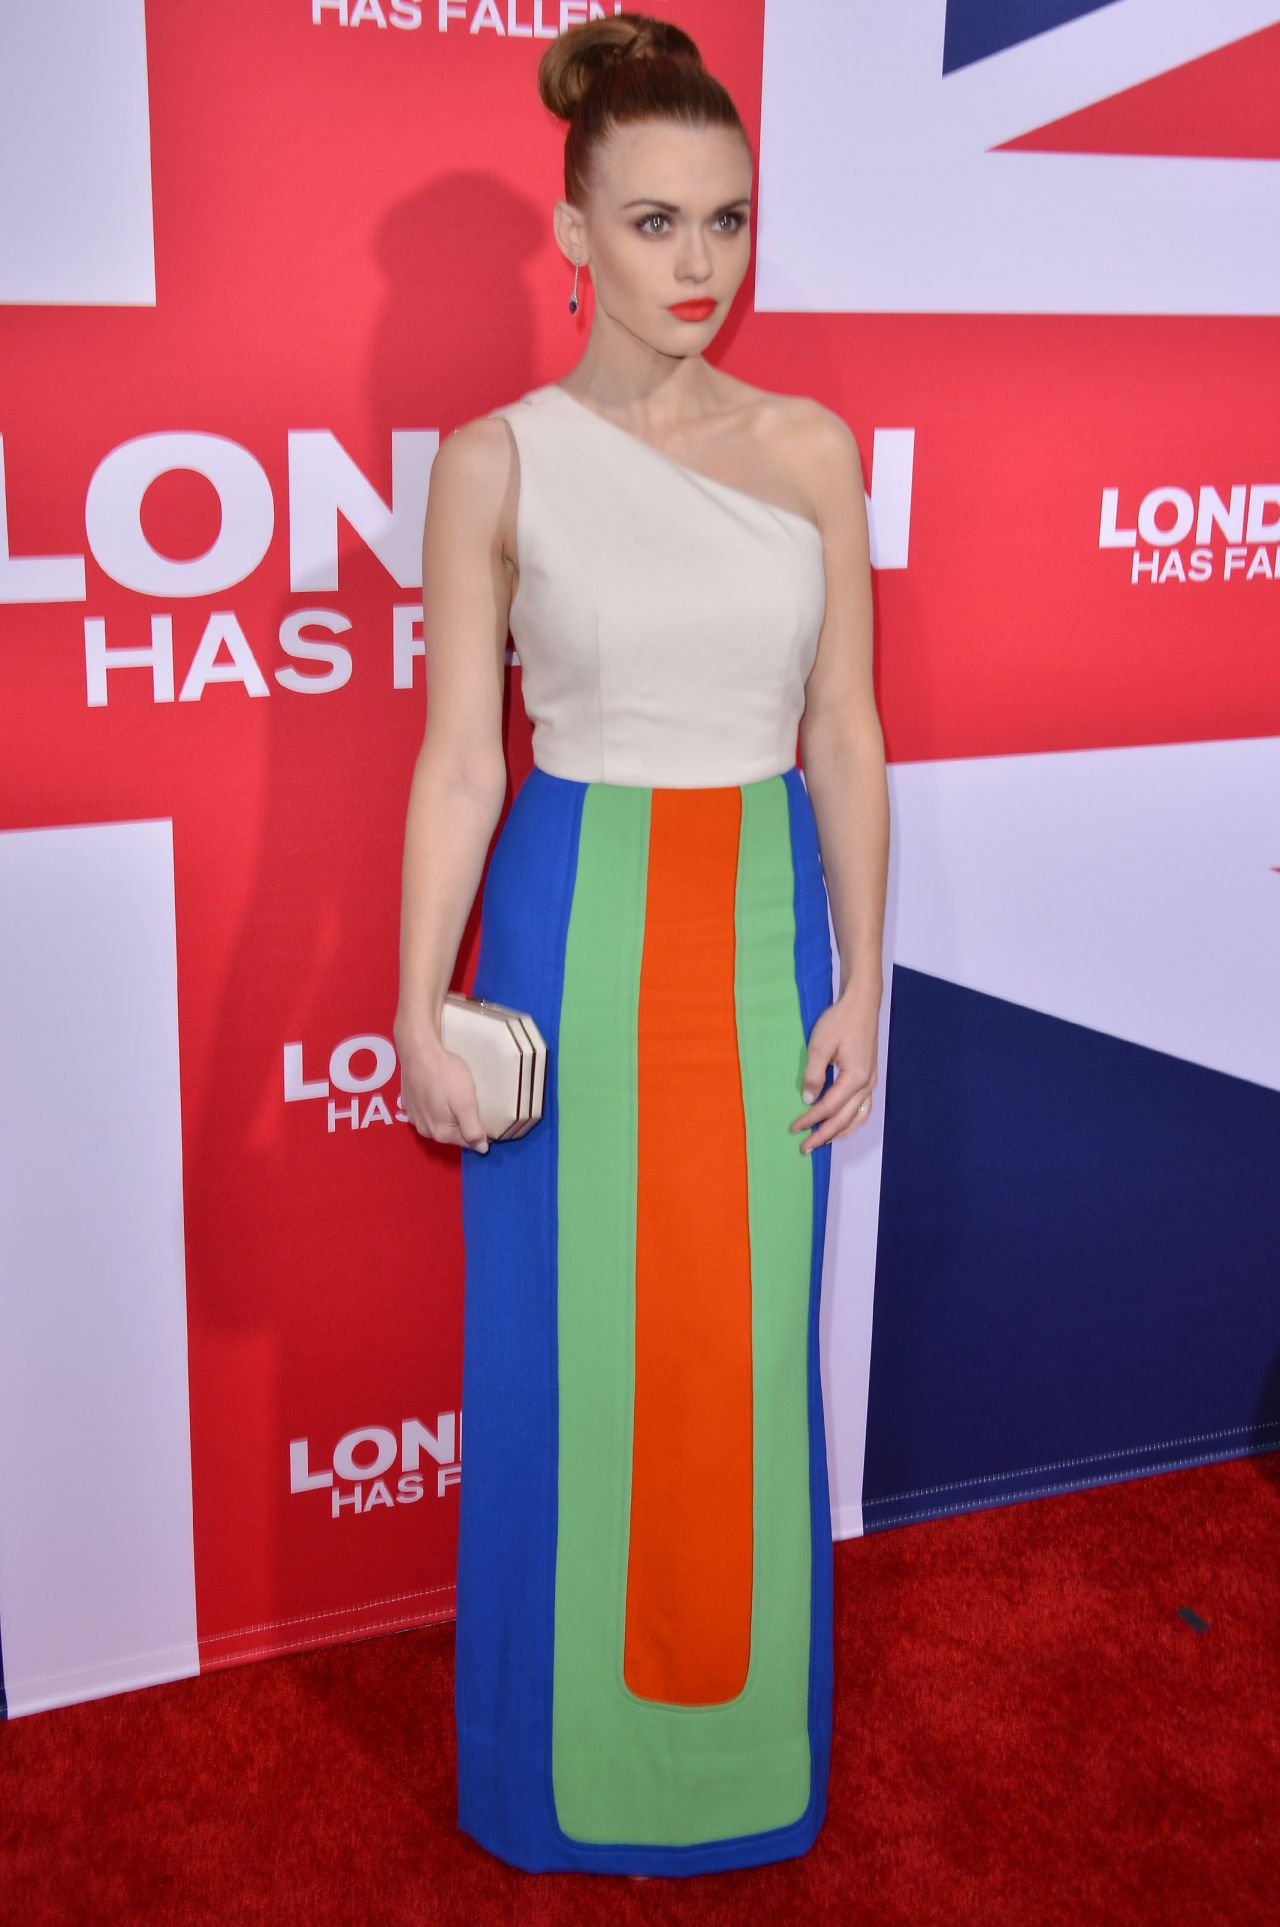 holland-roden-london-has-fallen-premiere-in-hollywood-8